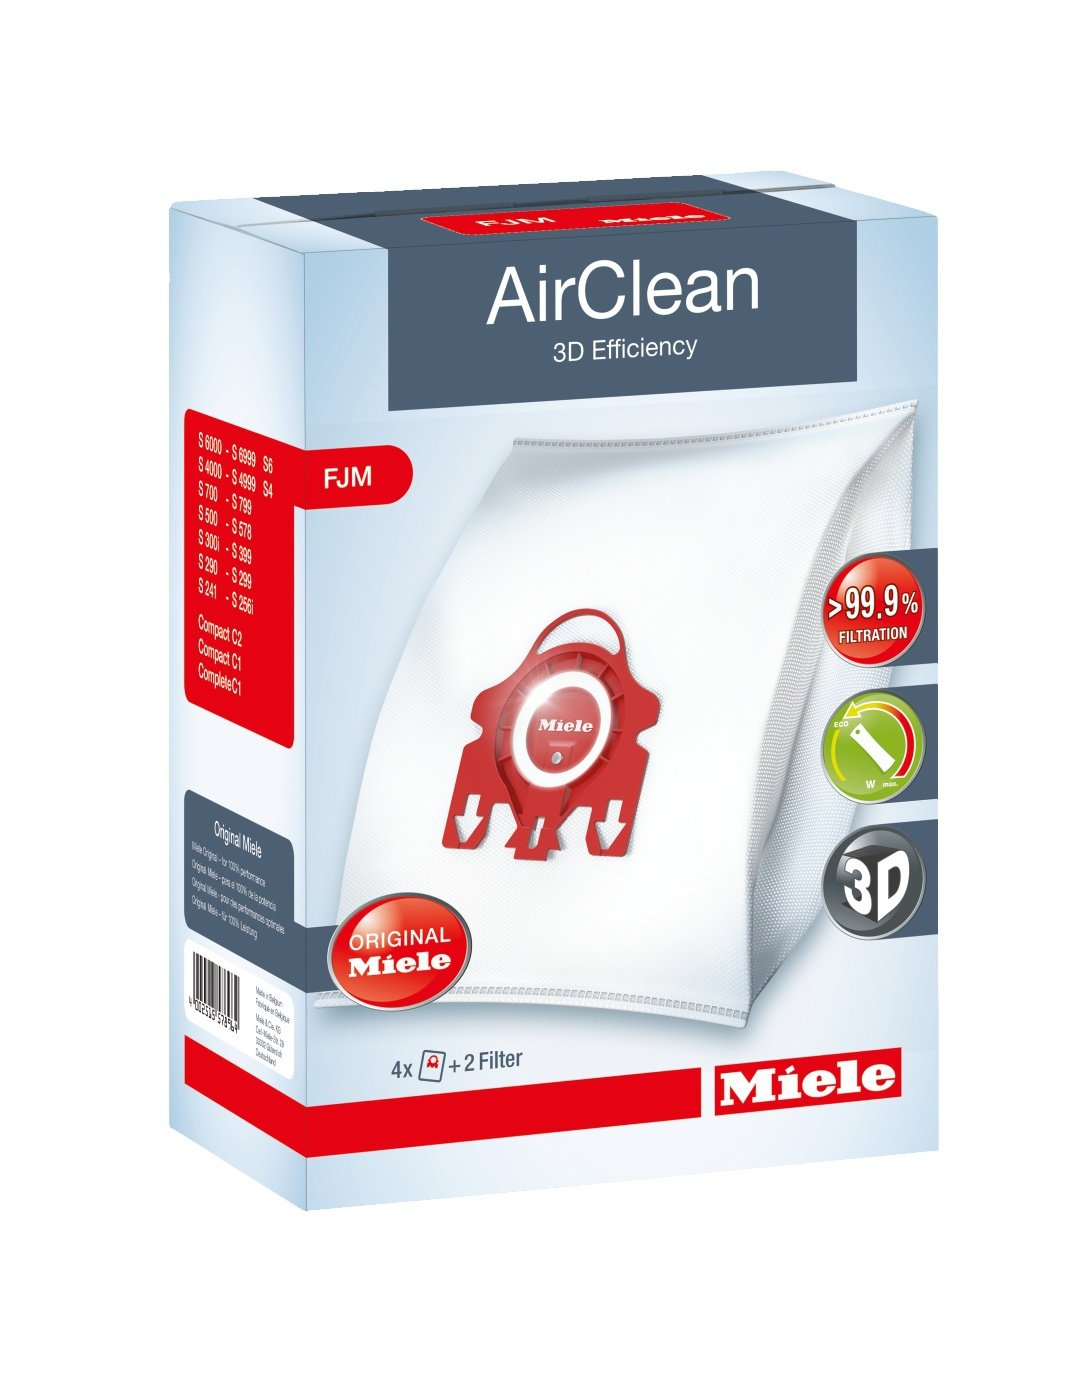 Miele AirClean 3D Efficiency Dust Bag, Type FJM, 12 Bags & 6 Filters